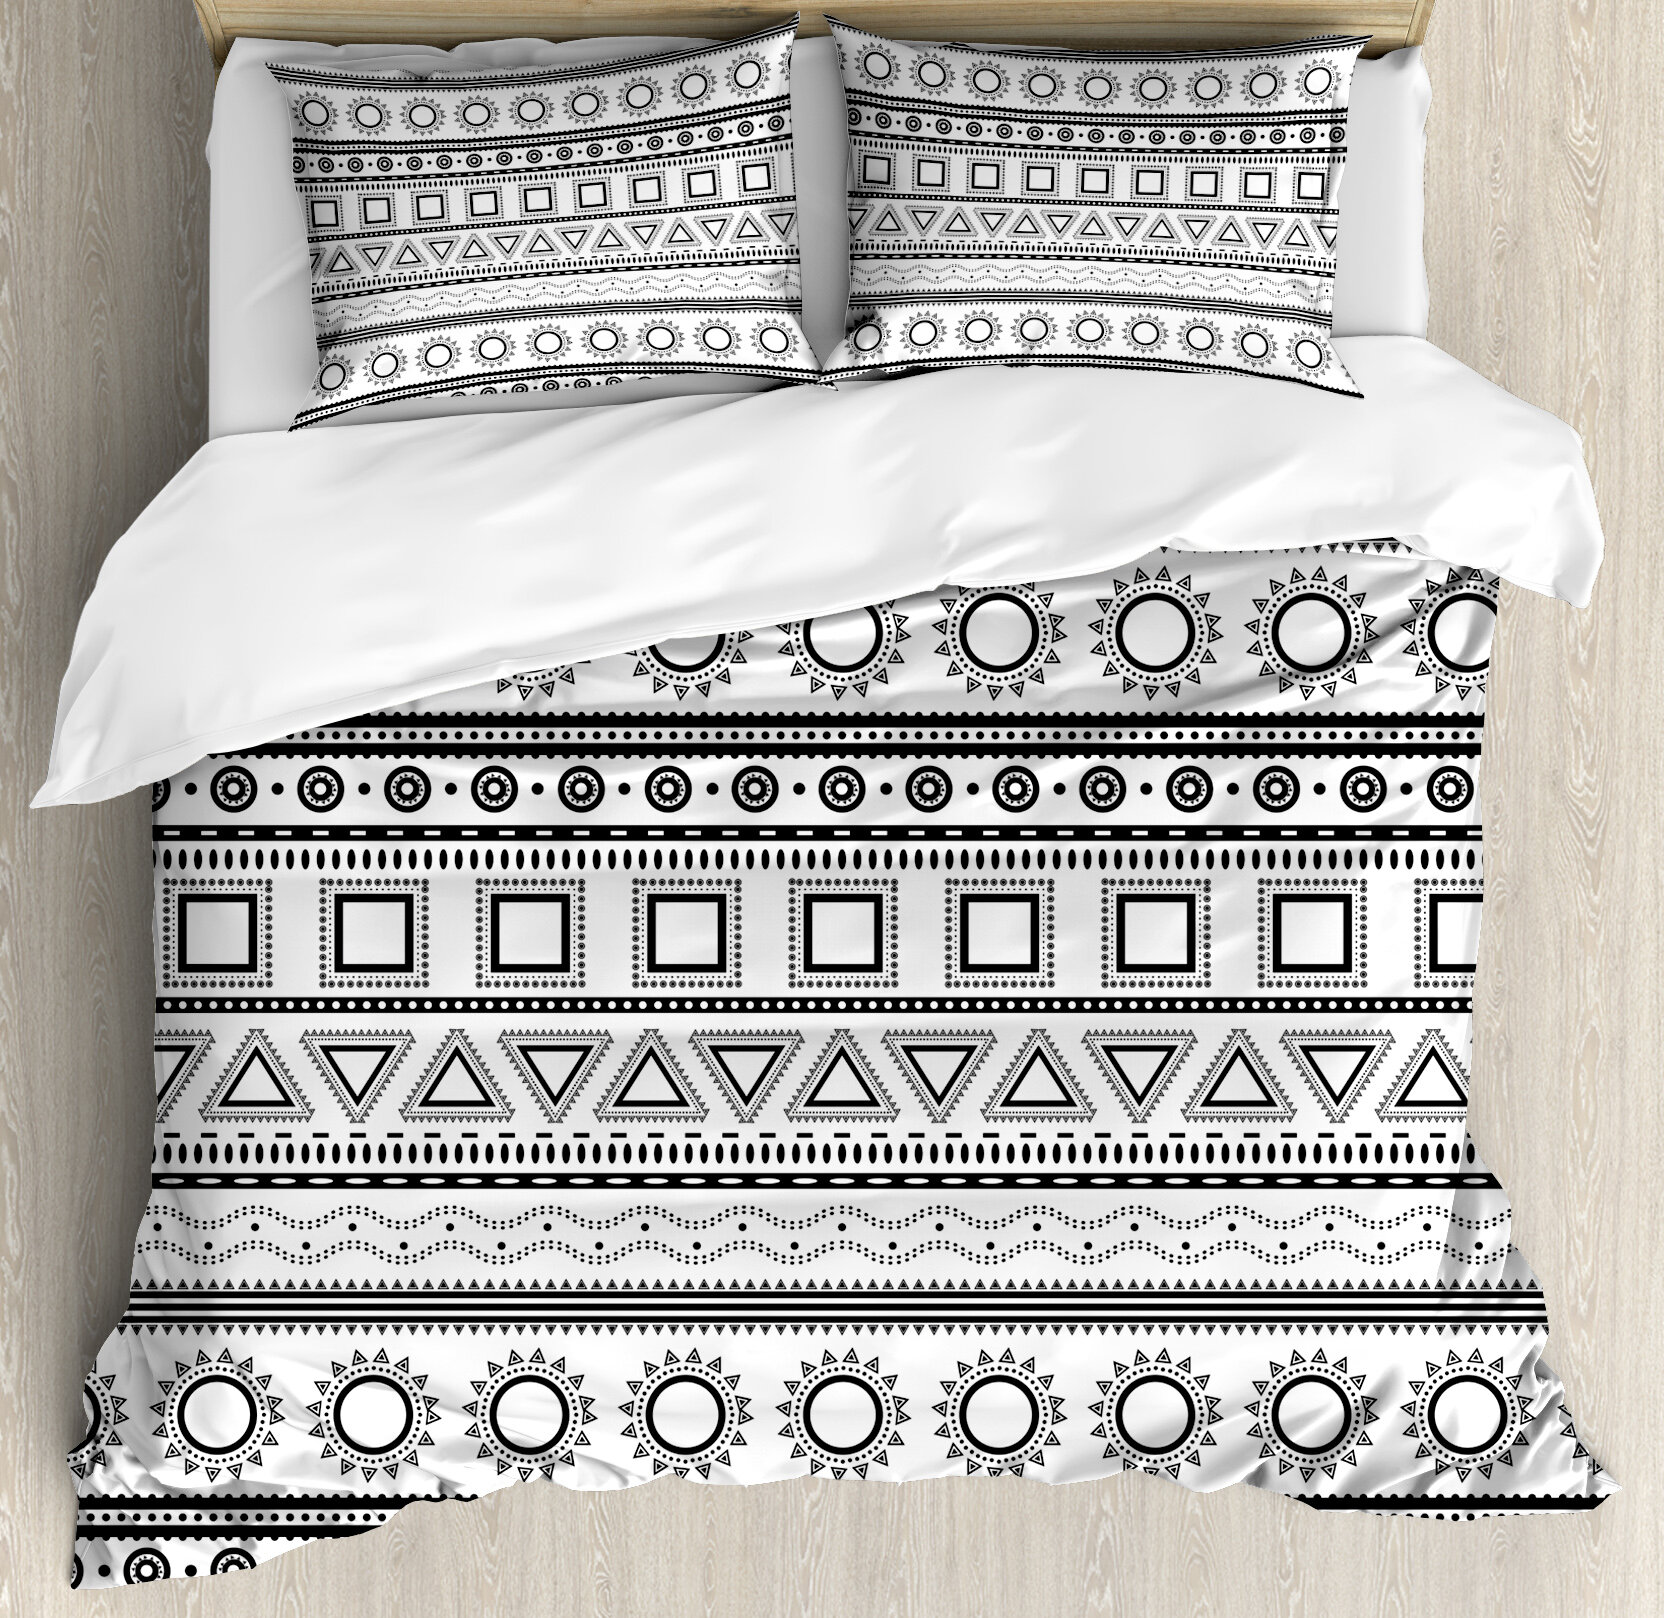 urban cover duvet like spring how bedding magical ranch duvets thinking outfitters sweetheart covers bow floral home olivia ideal mina size mattress western and plum style design box make twin aztec southwestern southwest a to full of geo plus furniture set king queen red comforters